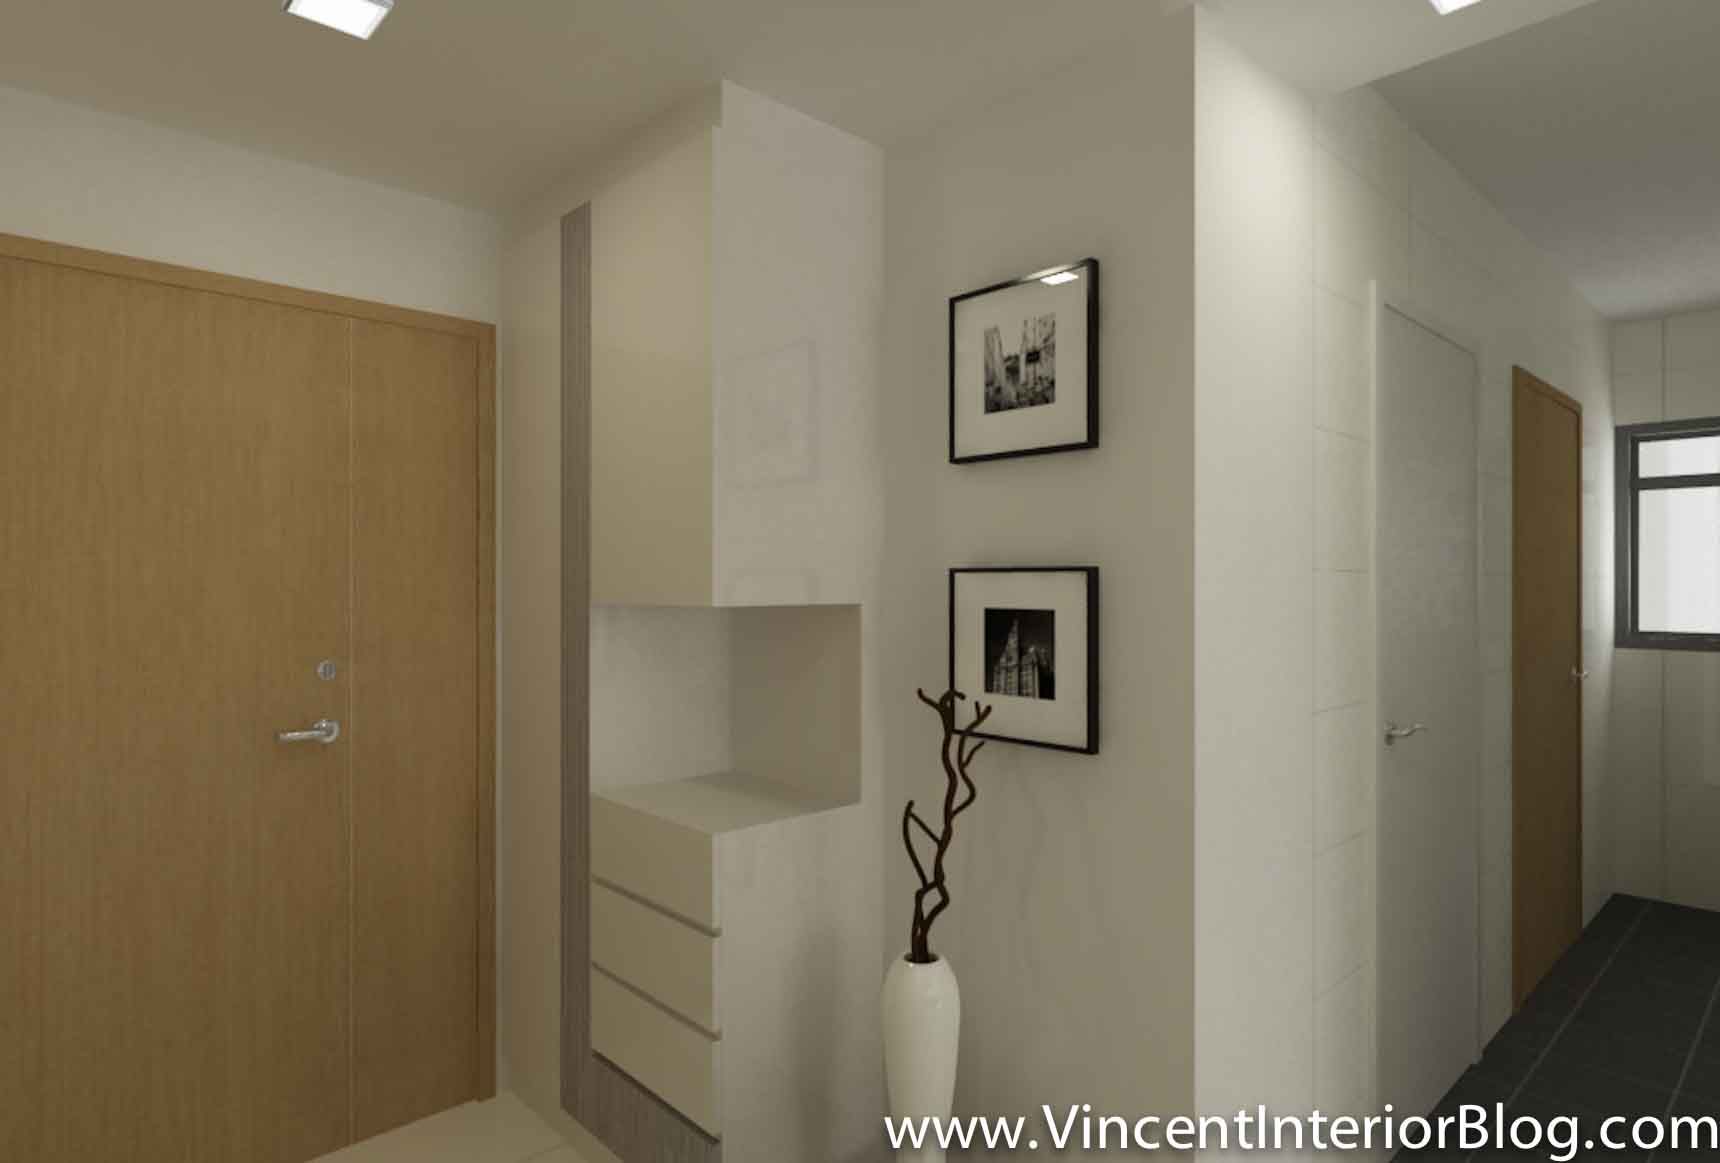 Bto 3 Room Hdb Renovation By Interior Designer Ben Ng Part 5 Project Completed Vincent Interior Blog Vincent Interior Blog